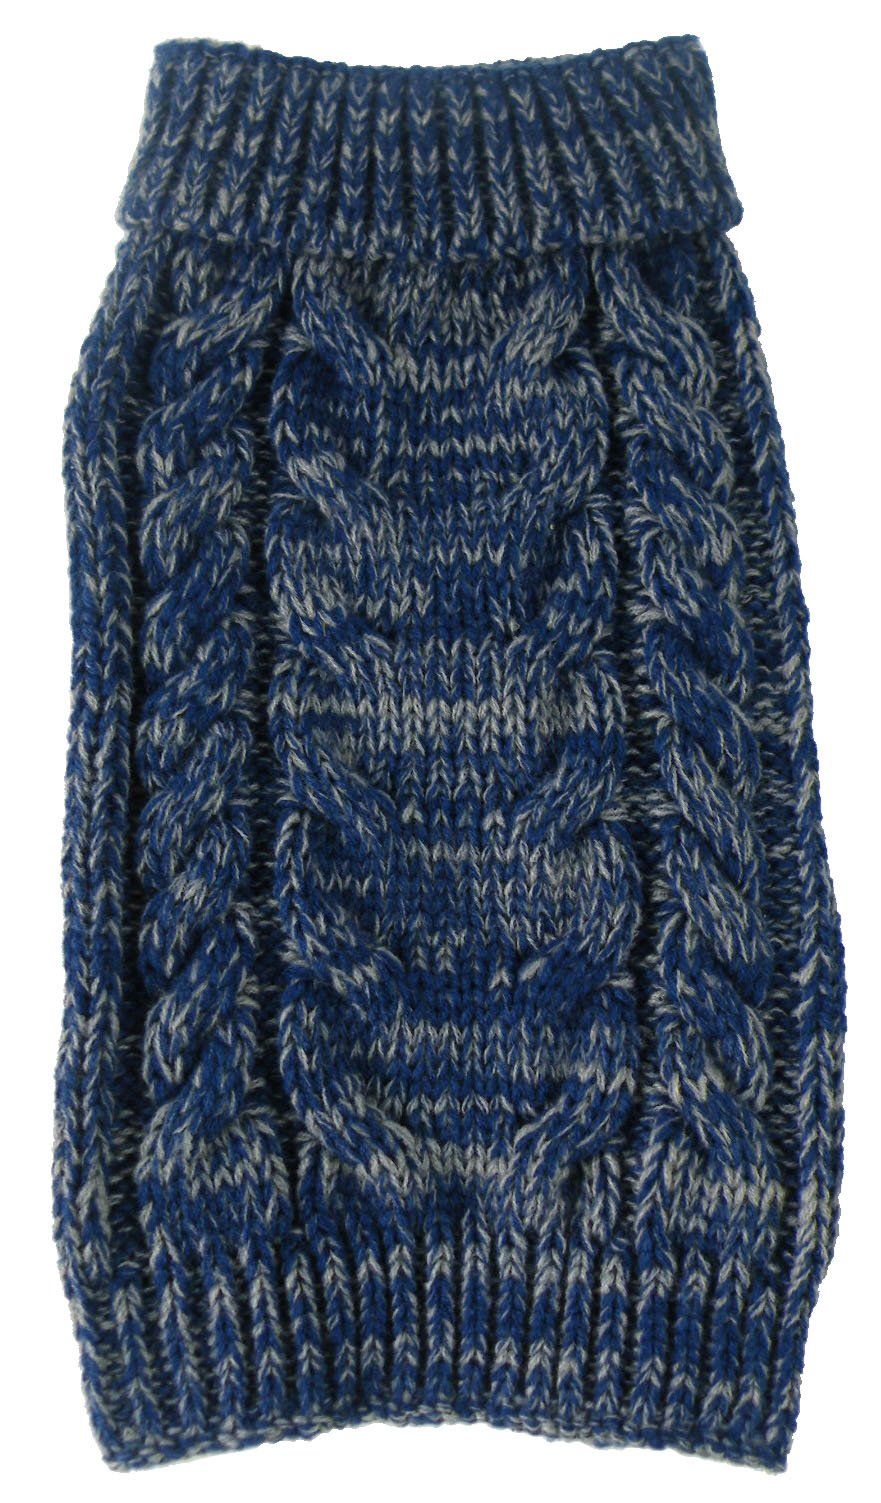 Pet Life Classic True Blue' Heavy Cable Knitted Ribbed Designer Fashion Pet Dog Sweater, Small, Blue and Light Grey